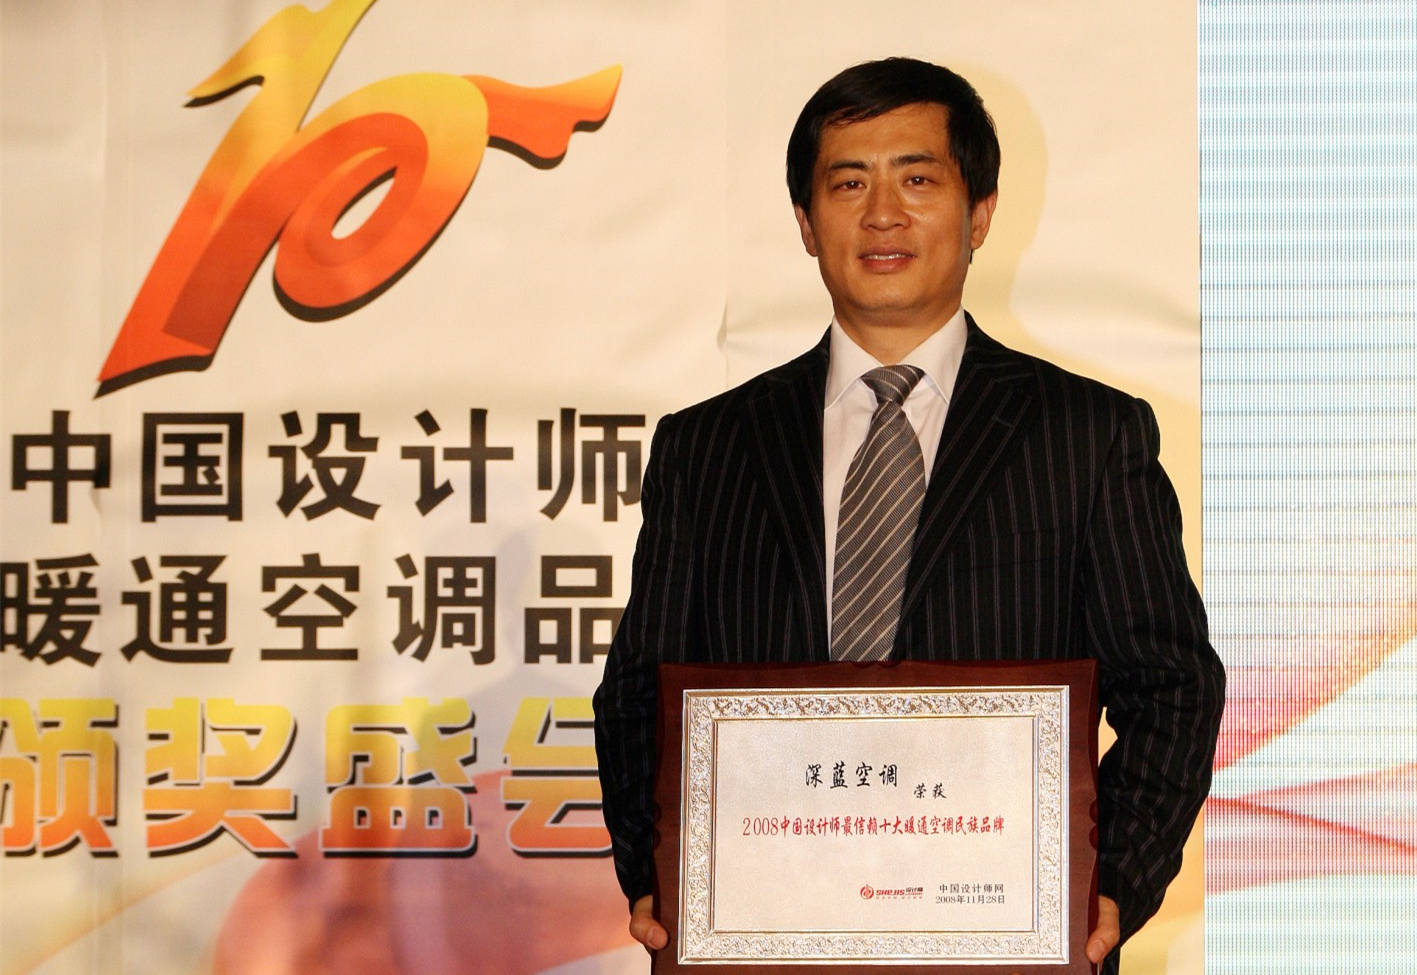 Accepting the prize for the 2008 China Top Ten Most Trusted National Brands